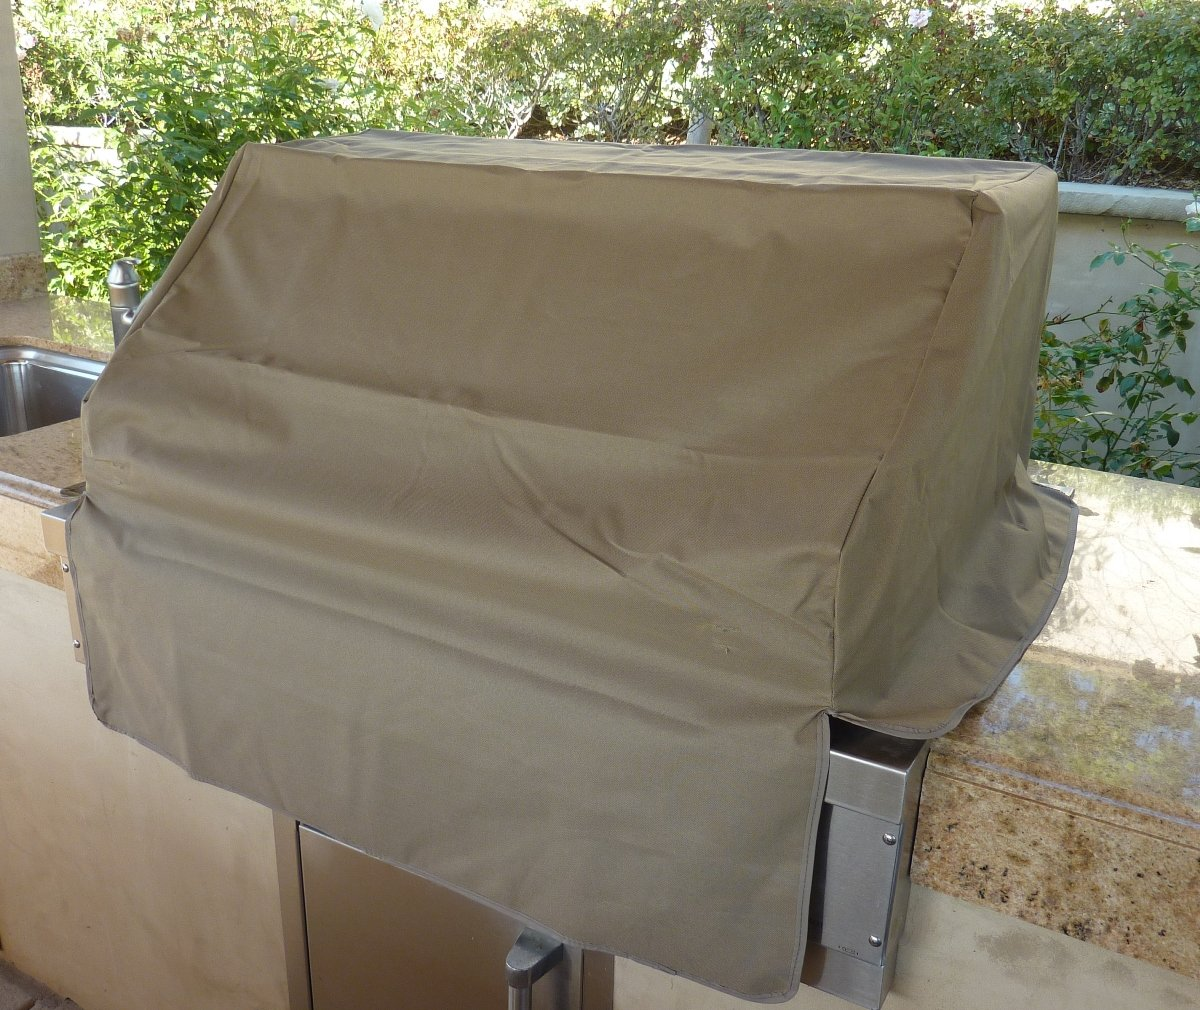 BBQ built-in grill cover